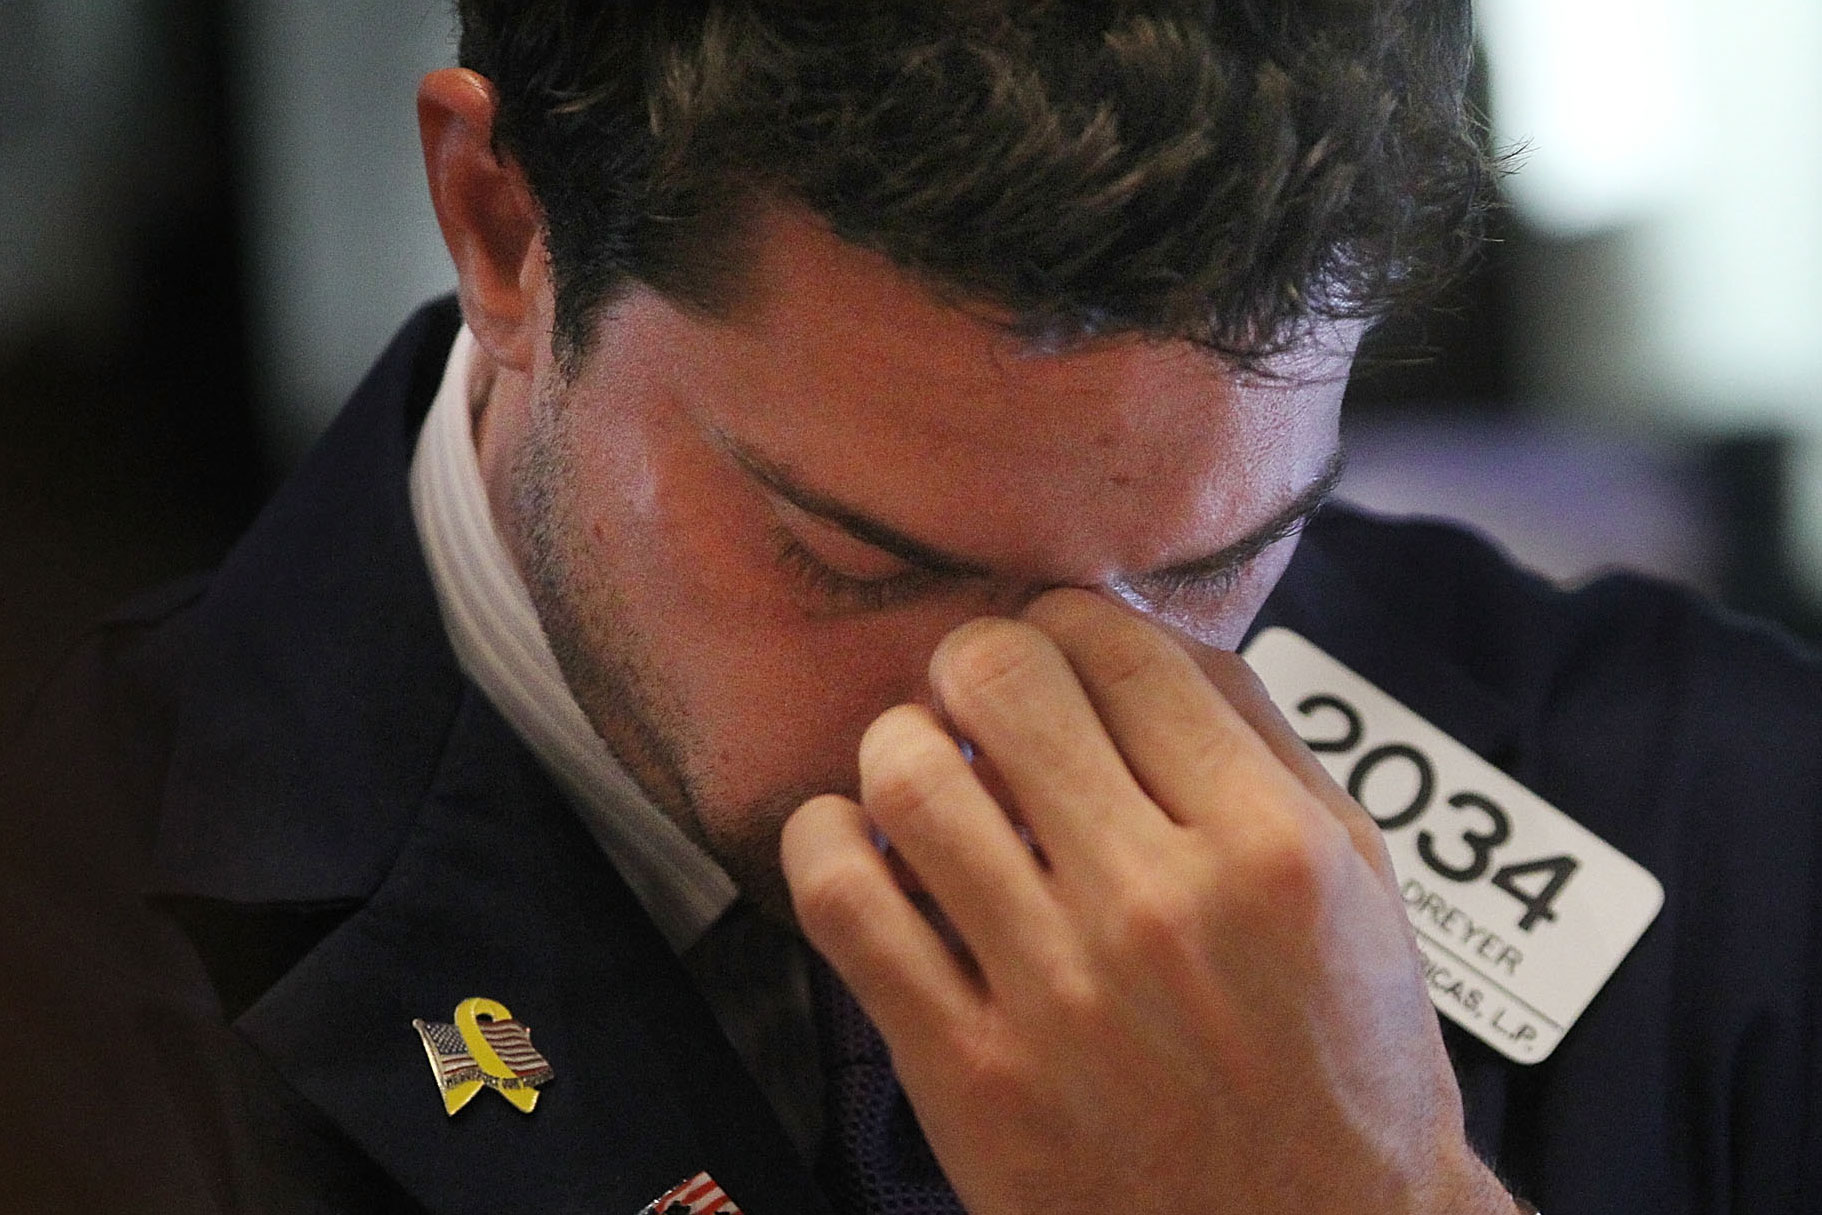 NEW YORK, NY - AUGUST 04:  A trader bows his head on the floor of the New York Stock Exchange after the closing bell on August 4, 2011 in New York City. The Dow plunged more than 500 points and is down more than 1,200 points since July 21. It was the market's worst one-day drop in more than two years.